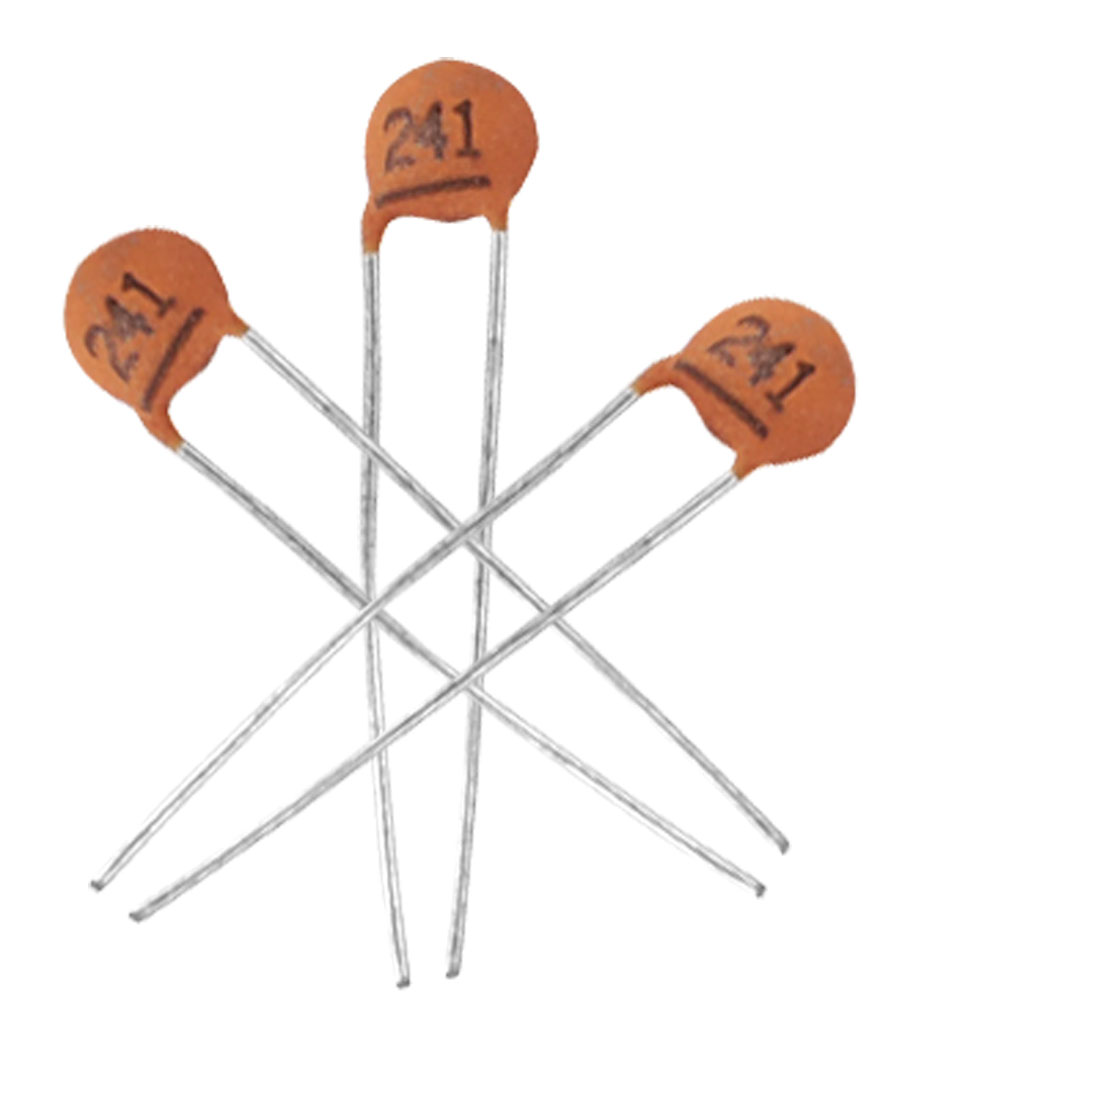 100 x 240pF 50V Low Voltage Through Hole Ceramic Disc Capacitors